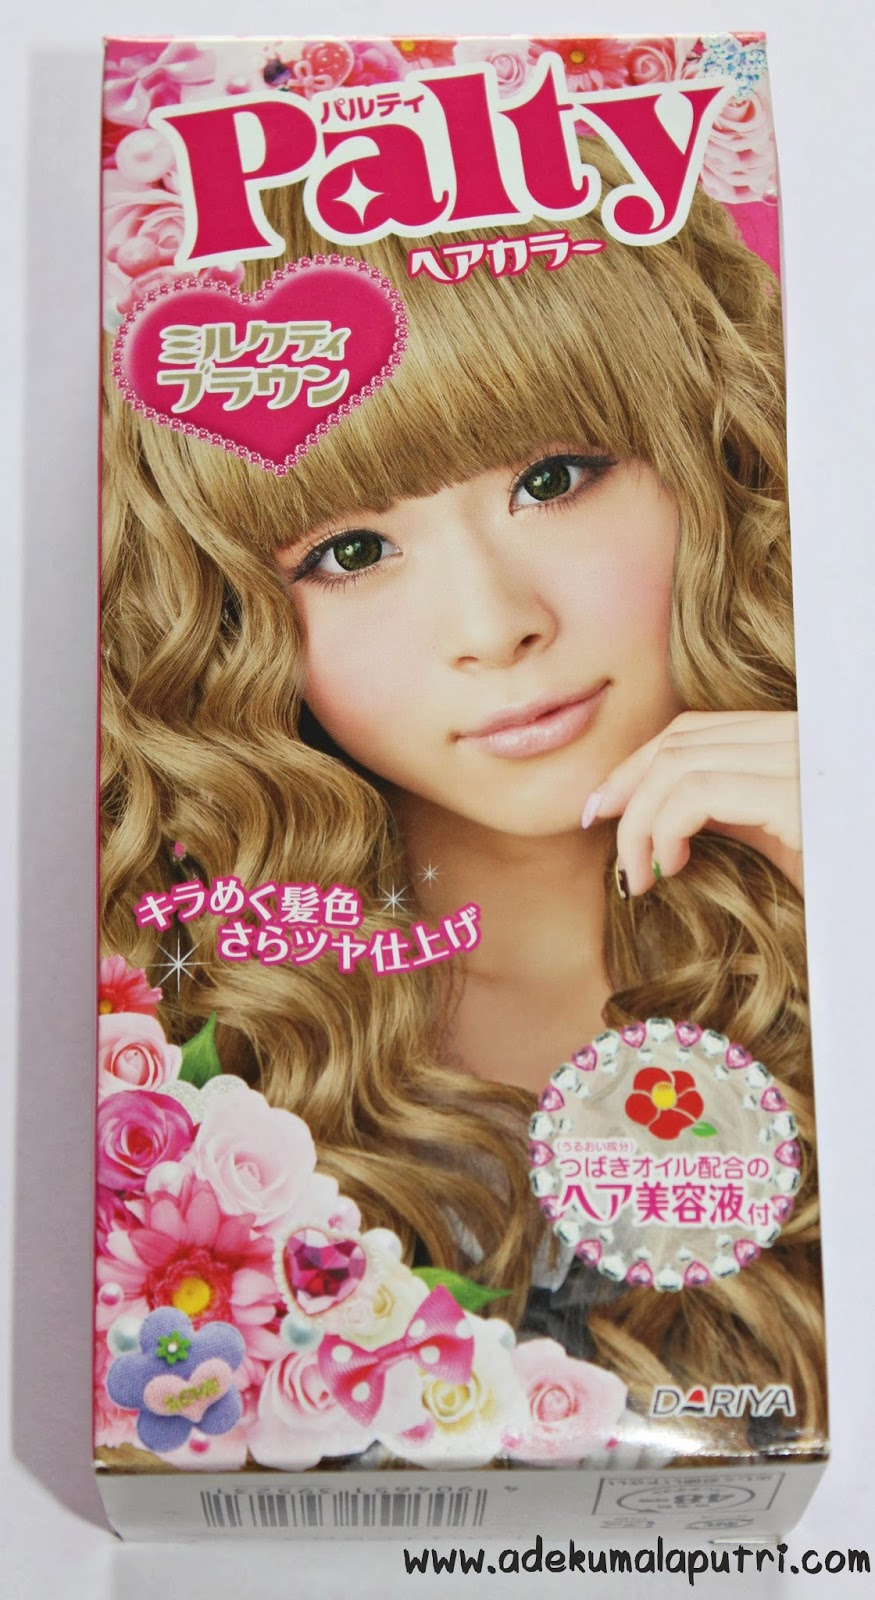 Lalas wonderland beauty blogger indonesia review dariya palty hair dye colors hair with a moist shiny and silky finish the hair color contains camellia oil for moisture silicone for smoothness and botanical nvjuhfo Choice Image